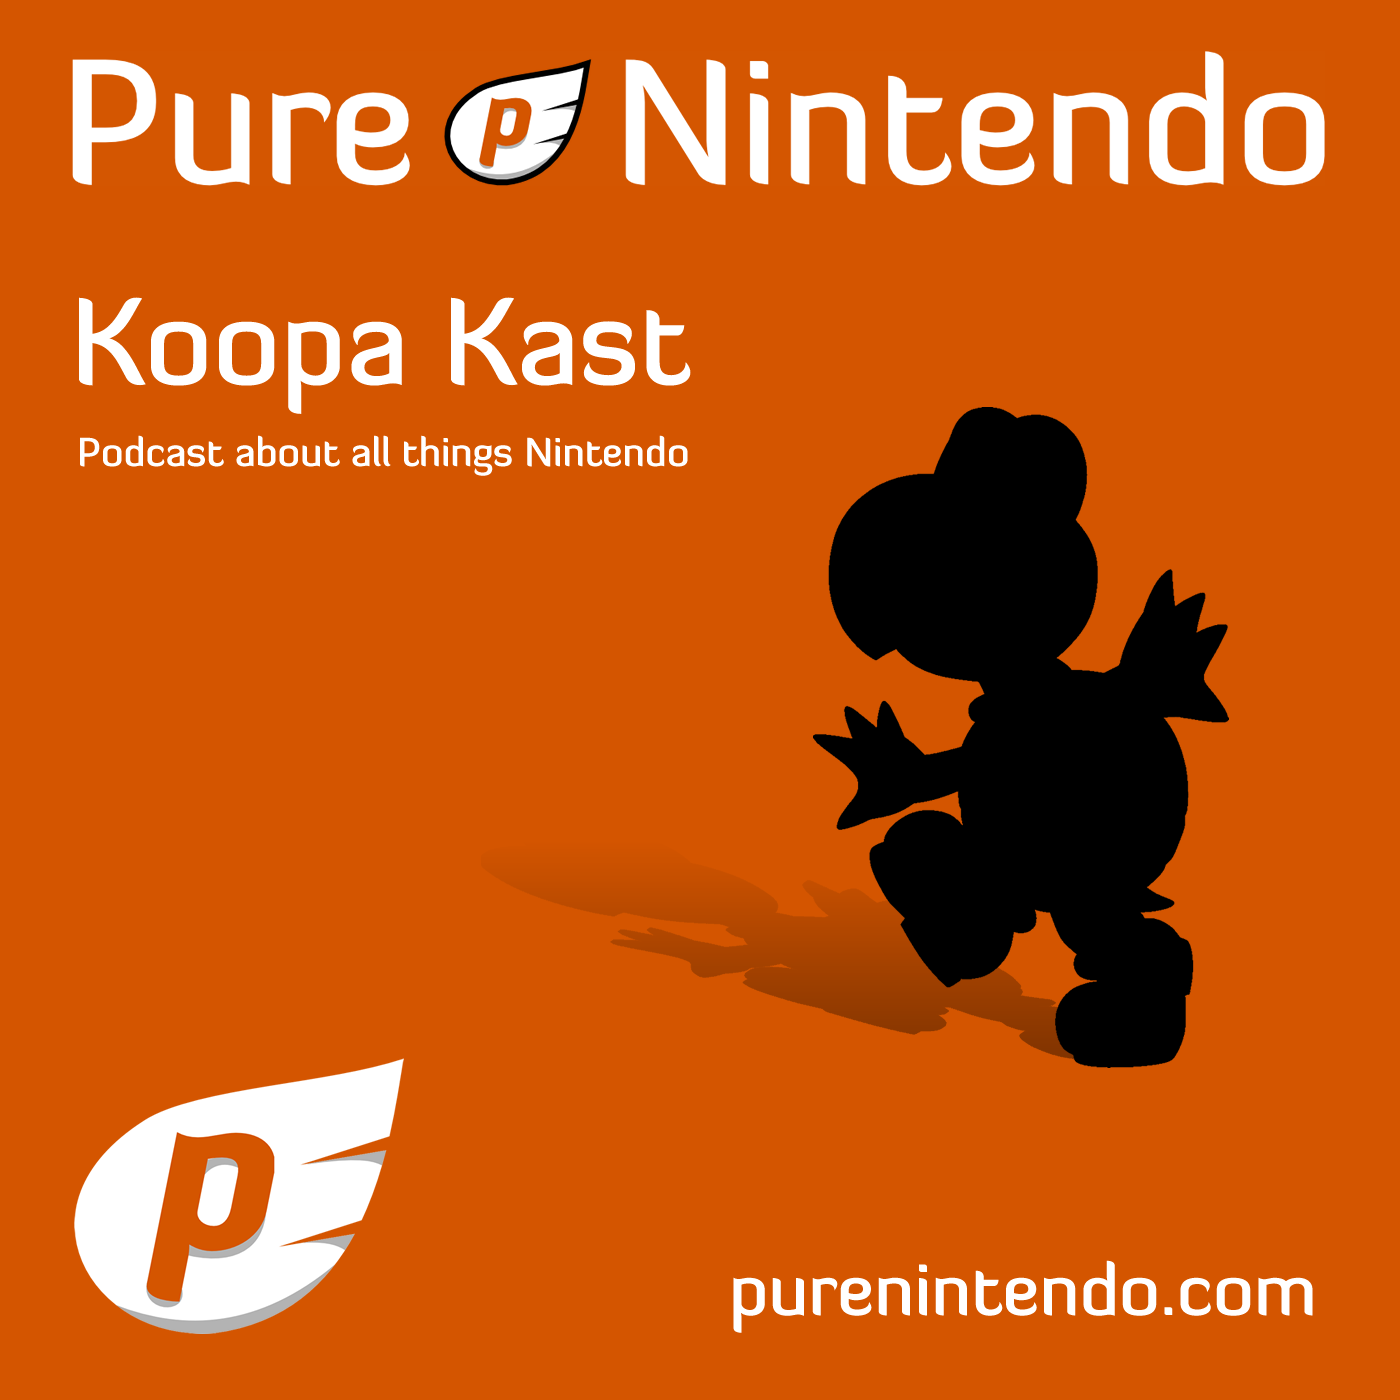 Koopa Kast #50 at 8:30PM EDT